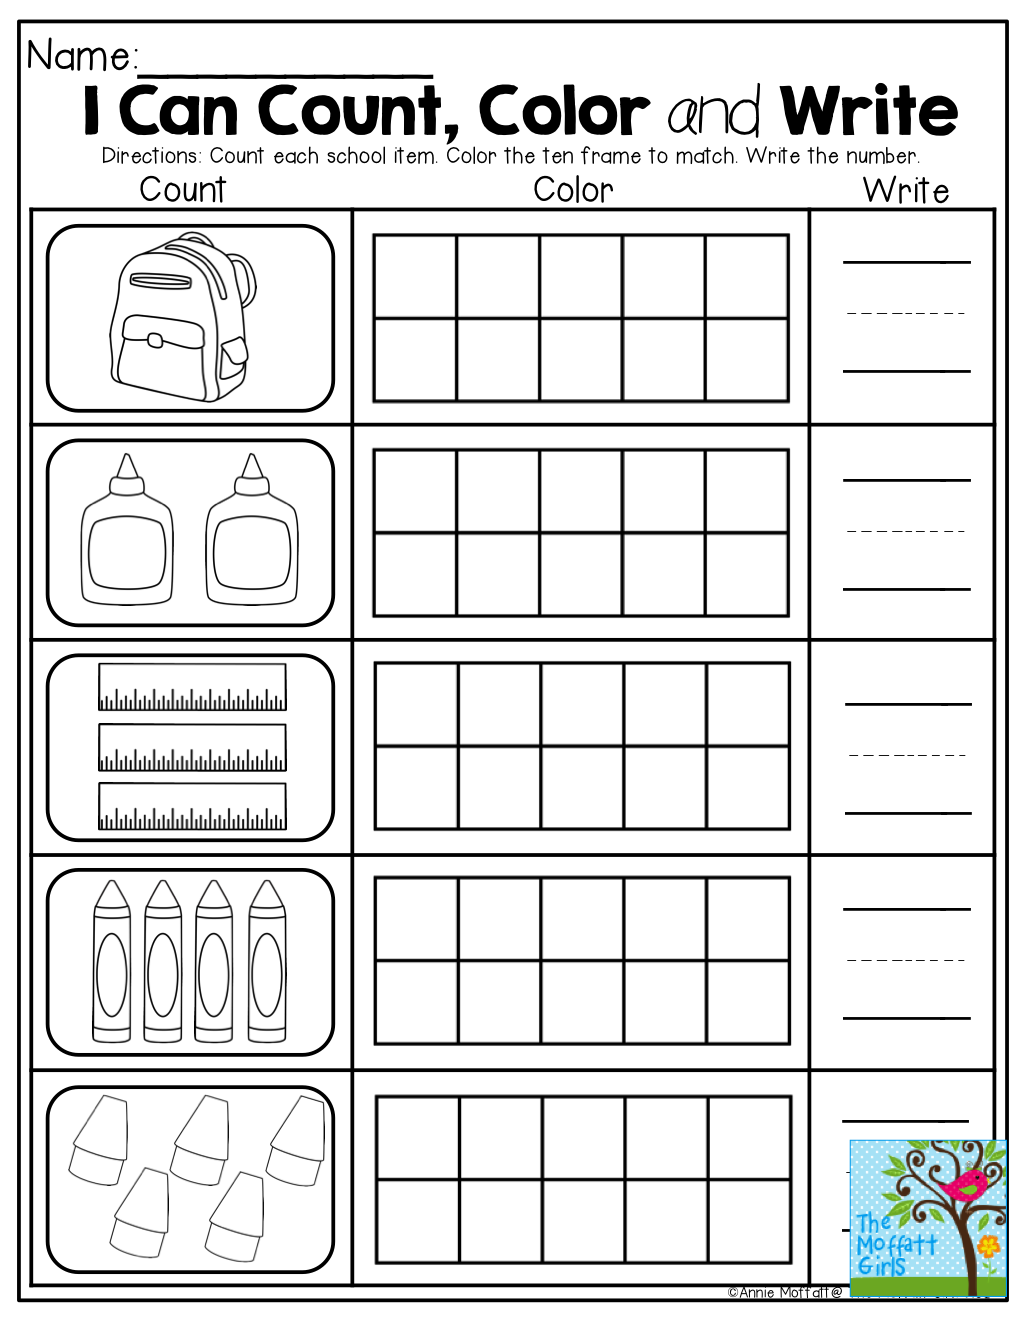 Count Color And Write Tons Of Fun Back To School Resources